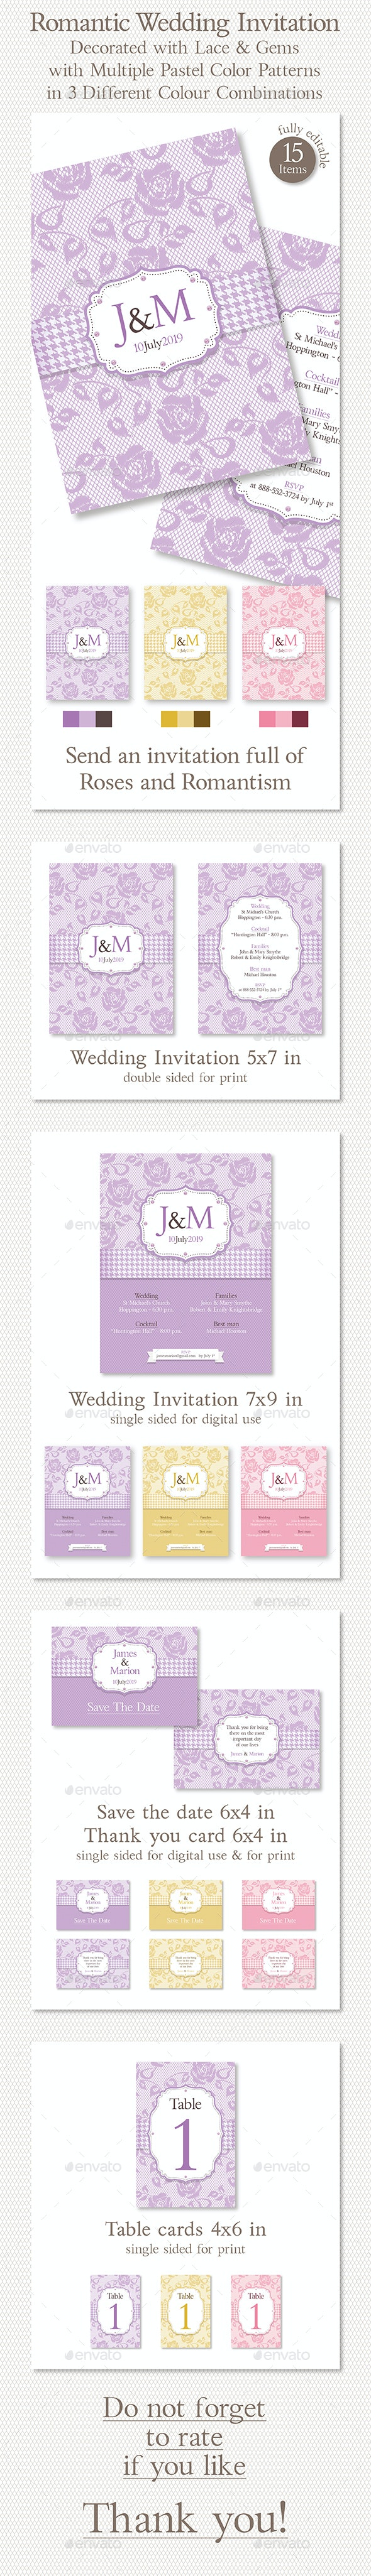 Romantic Wedding Invitation Decorated with Lace & Gems in 3 Different Color Combinations - Weddings Cards & Invites